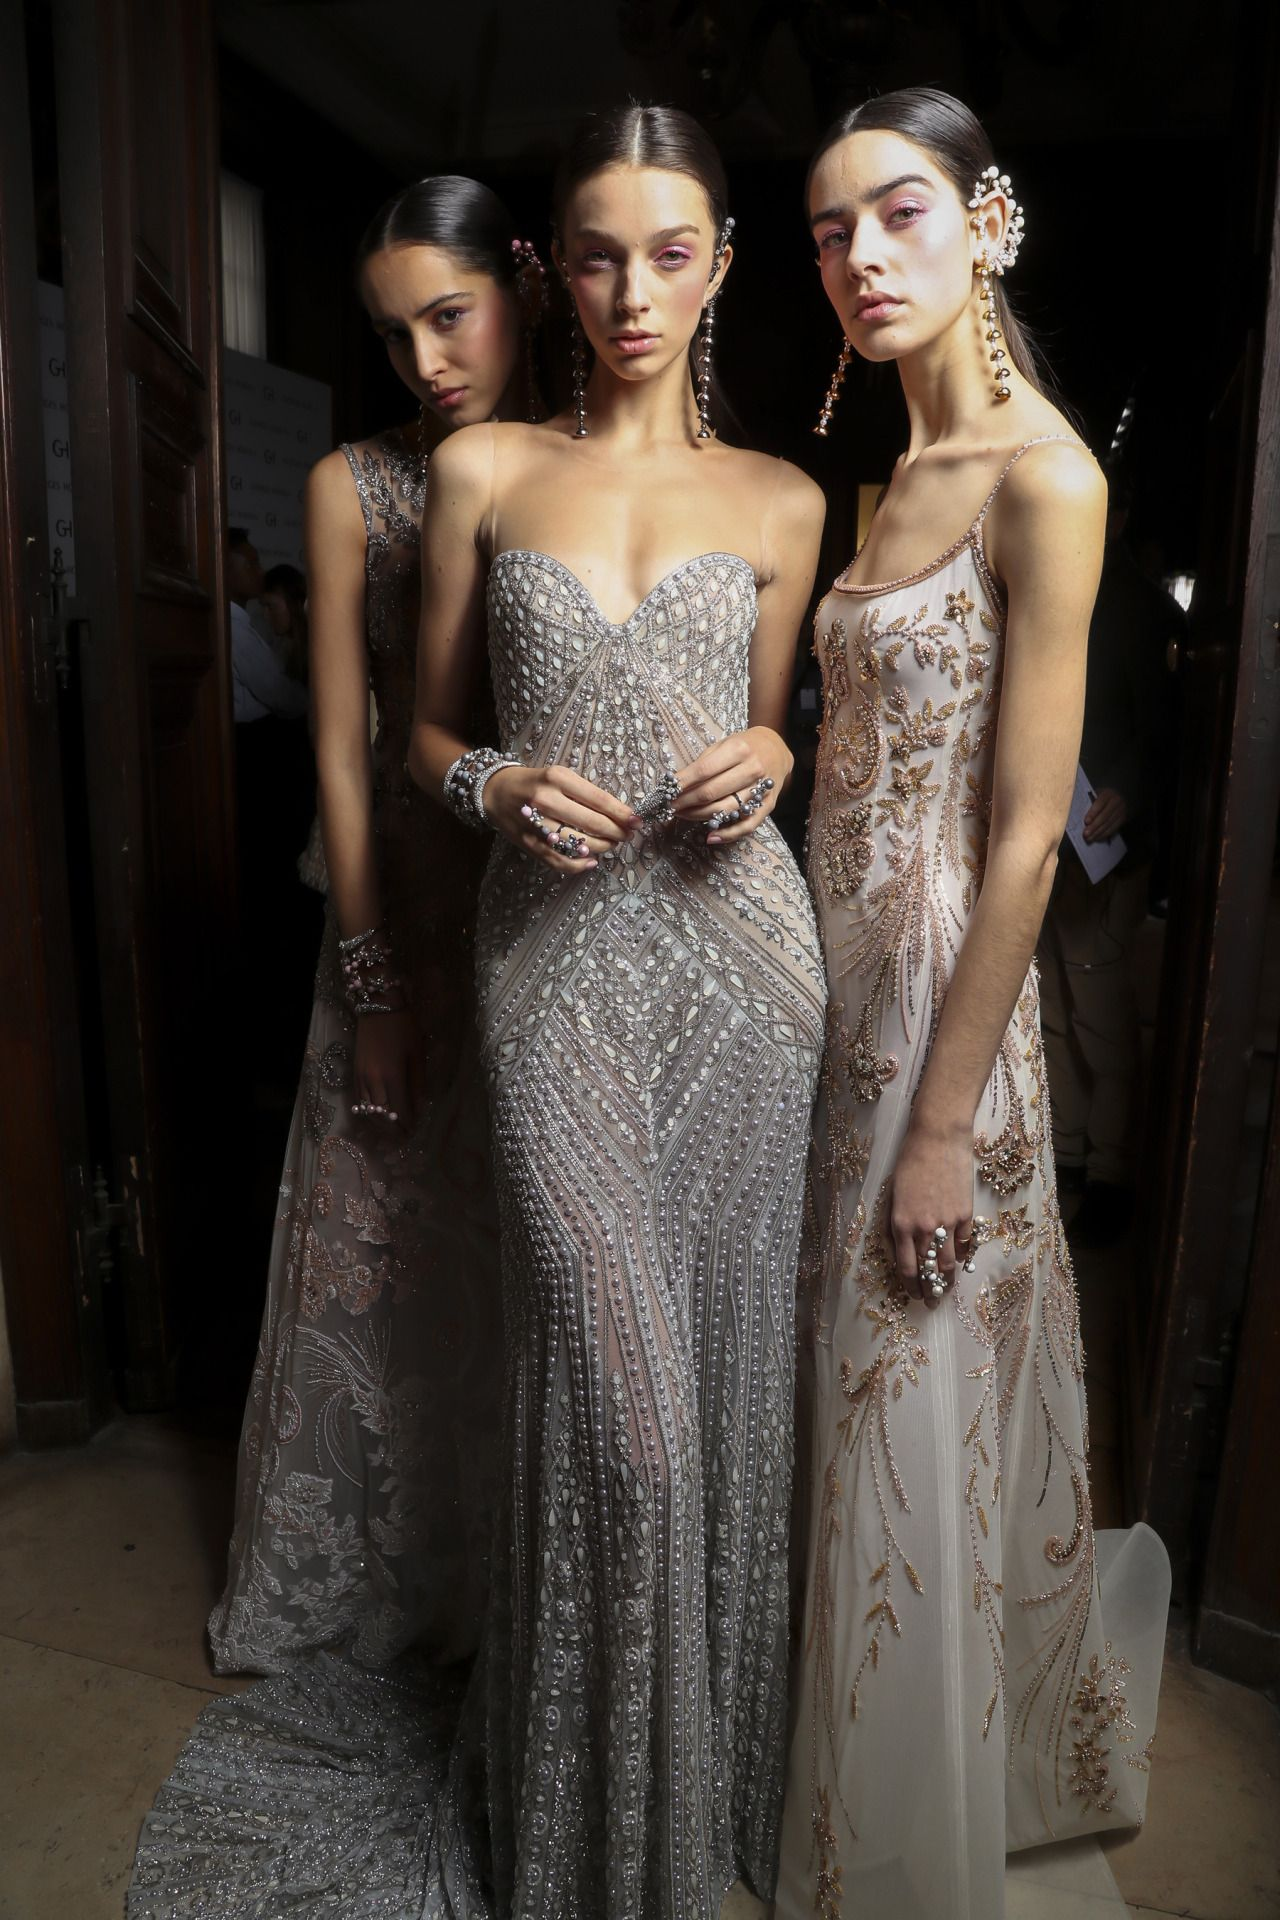 Pin by Malak Nabil on Dresses | Pinterest | Gowns, Fancy and Haute ...